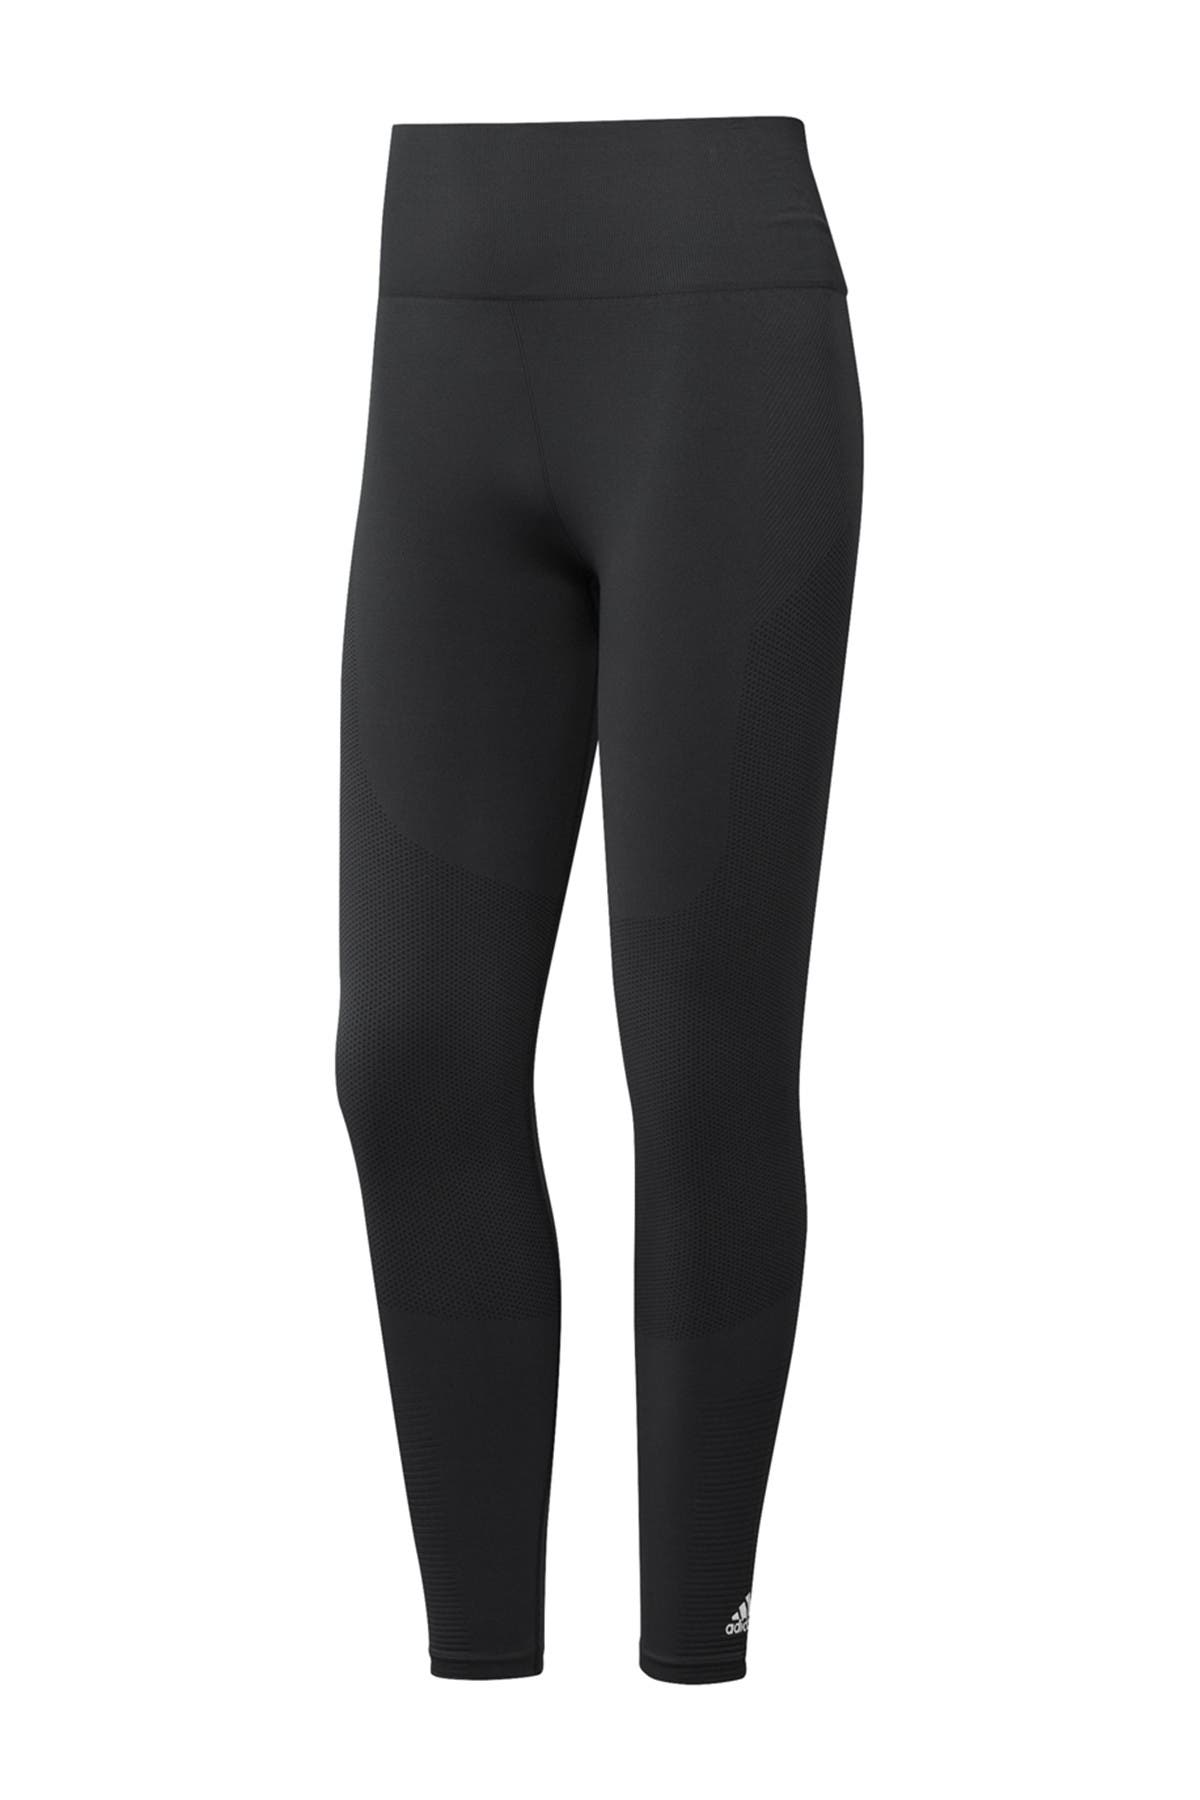 Image of adidas Seamless Tights